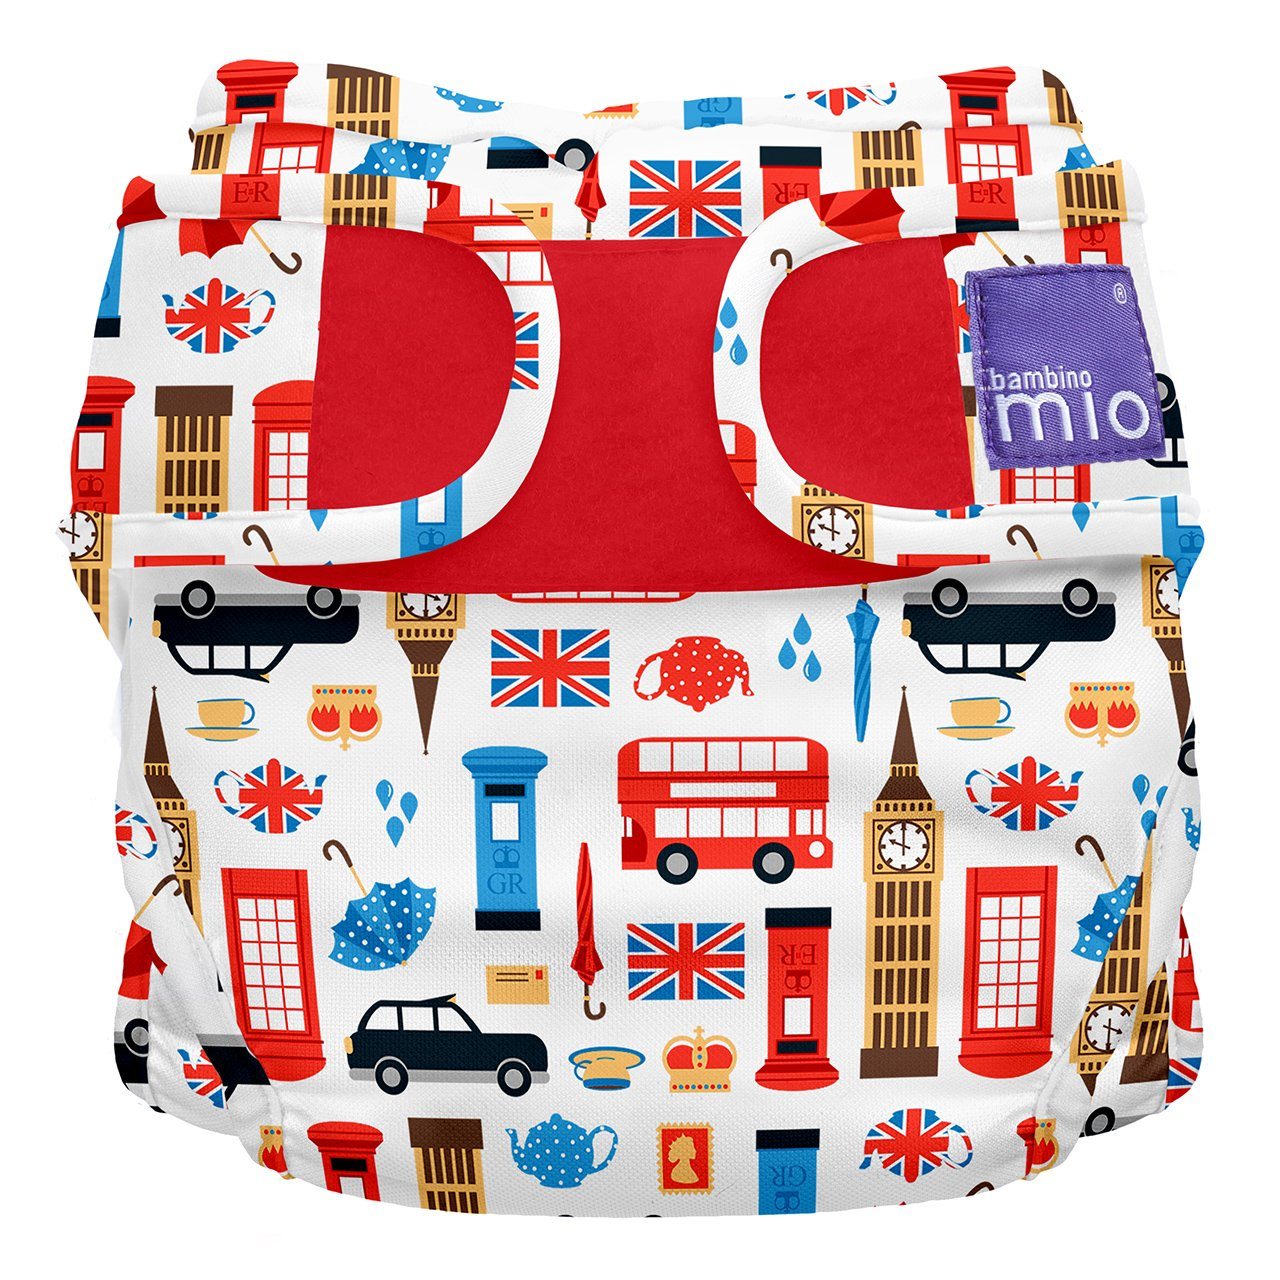 Bambino Mio, miosoft cloth diaper cover, sweet dreams, size 2 (9kgs+) MS2 SWE